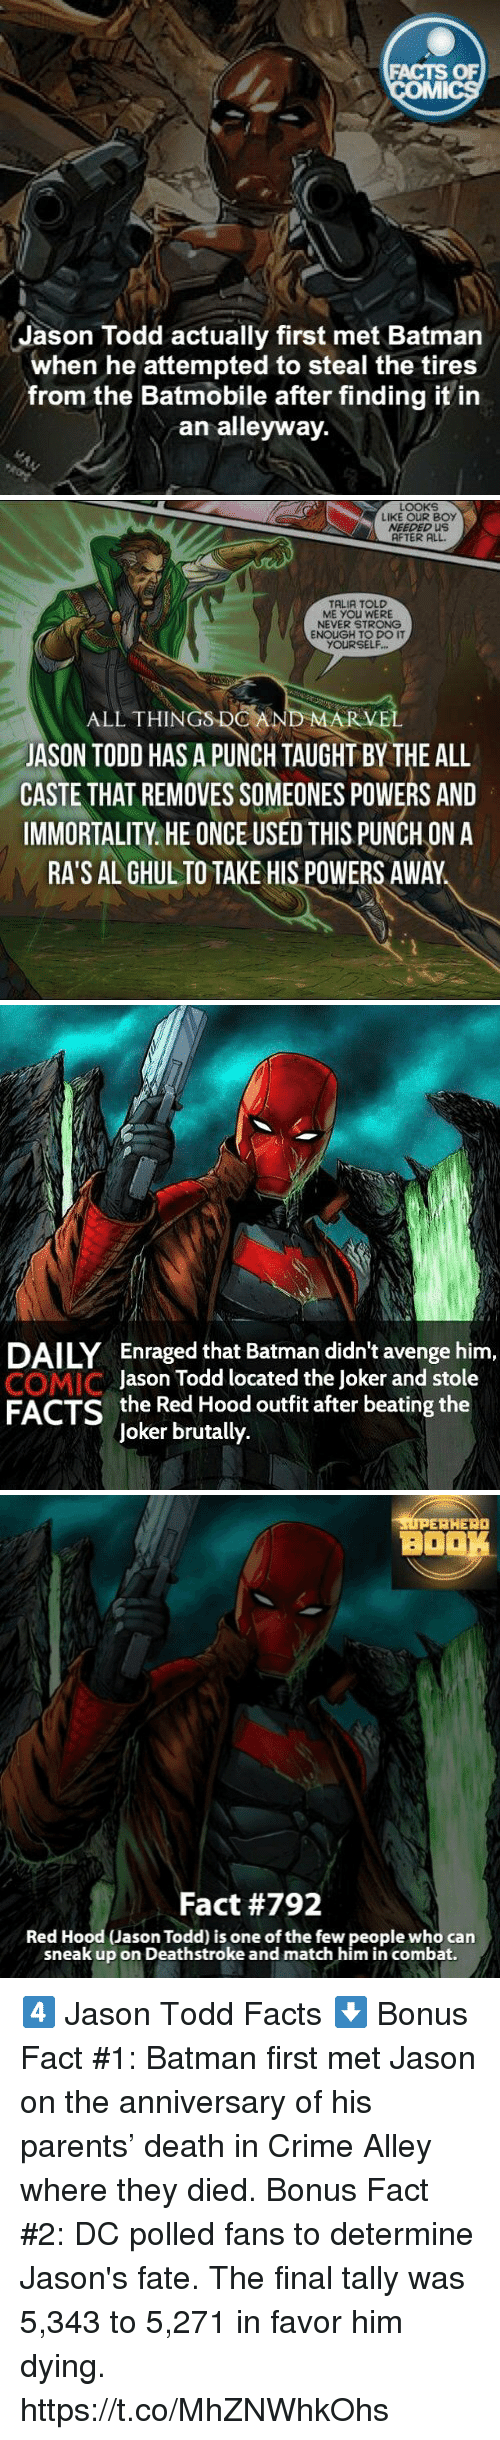 Batman, Crime, and Facts: FACTS OF  Mi  Jason Todd actually first met Batman  when he attempted to steal the tires  from the Batmobile after finding it in  an alleyway.   LOOKS  LIKE OuR Boy  NEEDED us  AFTER ALL  TALIA TOLD  ME YOU WERE  NEVER STRONG  ENOUGH TO DO IT  YOURSELF  ALL THINGS D AND MA  RVE  JASON TODD HAS A PUNCH TAUGHT BY THE ALL  CASTE THAT REMOVES SOMEONES POWERS AND  IMMORTALITY. HE ONCE USED THIS PUNCH ON A  RA'S AL GHUL TO TAKE HIS POWERS AWAY   DAILY  COMIC  FACTS  Enraged that Batman didn't avenge him,  Jason Todd located the Joker and stole  the Red Hood outfit after beating the  Joker brutally   ENHER  Fact #792  Red Hood (Jason Todd) is one of the few people who can  sneak up on Deathstroke and match him in combat. 4️⃣ Jason Todd Facts ⬇️  Bonus Fact #1: Batman first met Jason on the anniversary of his parents' death in Crime Alley where they died.  Bonus Fact #2: DC polled fans to determine Jason's fate. The final tally was 5,343 to 5,271 in favor him dying. https://t.co/MhZNWhkOhs